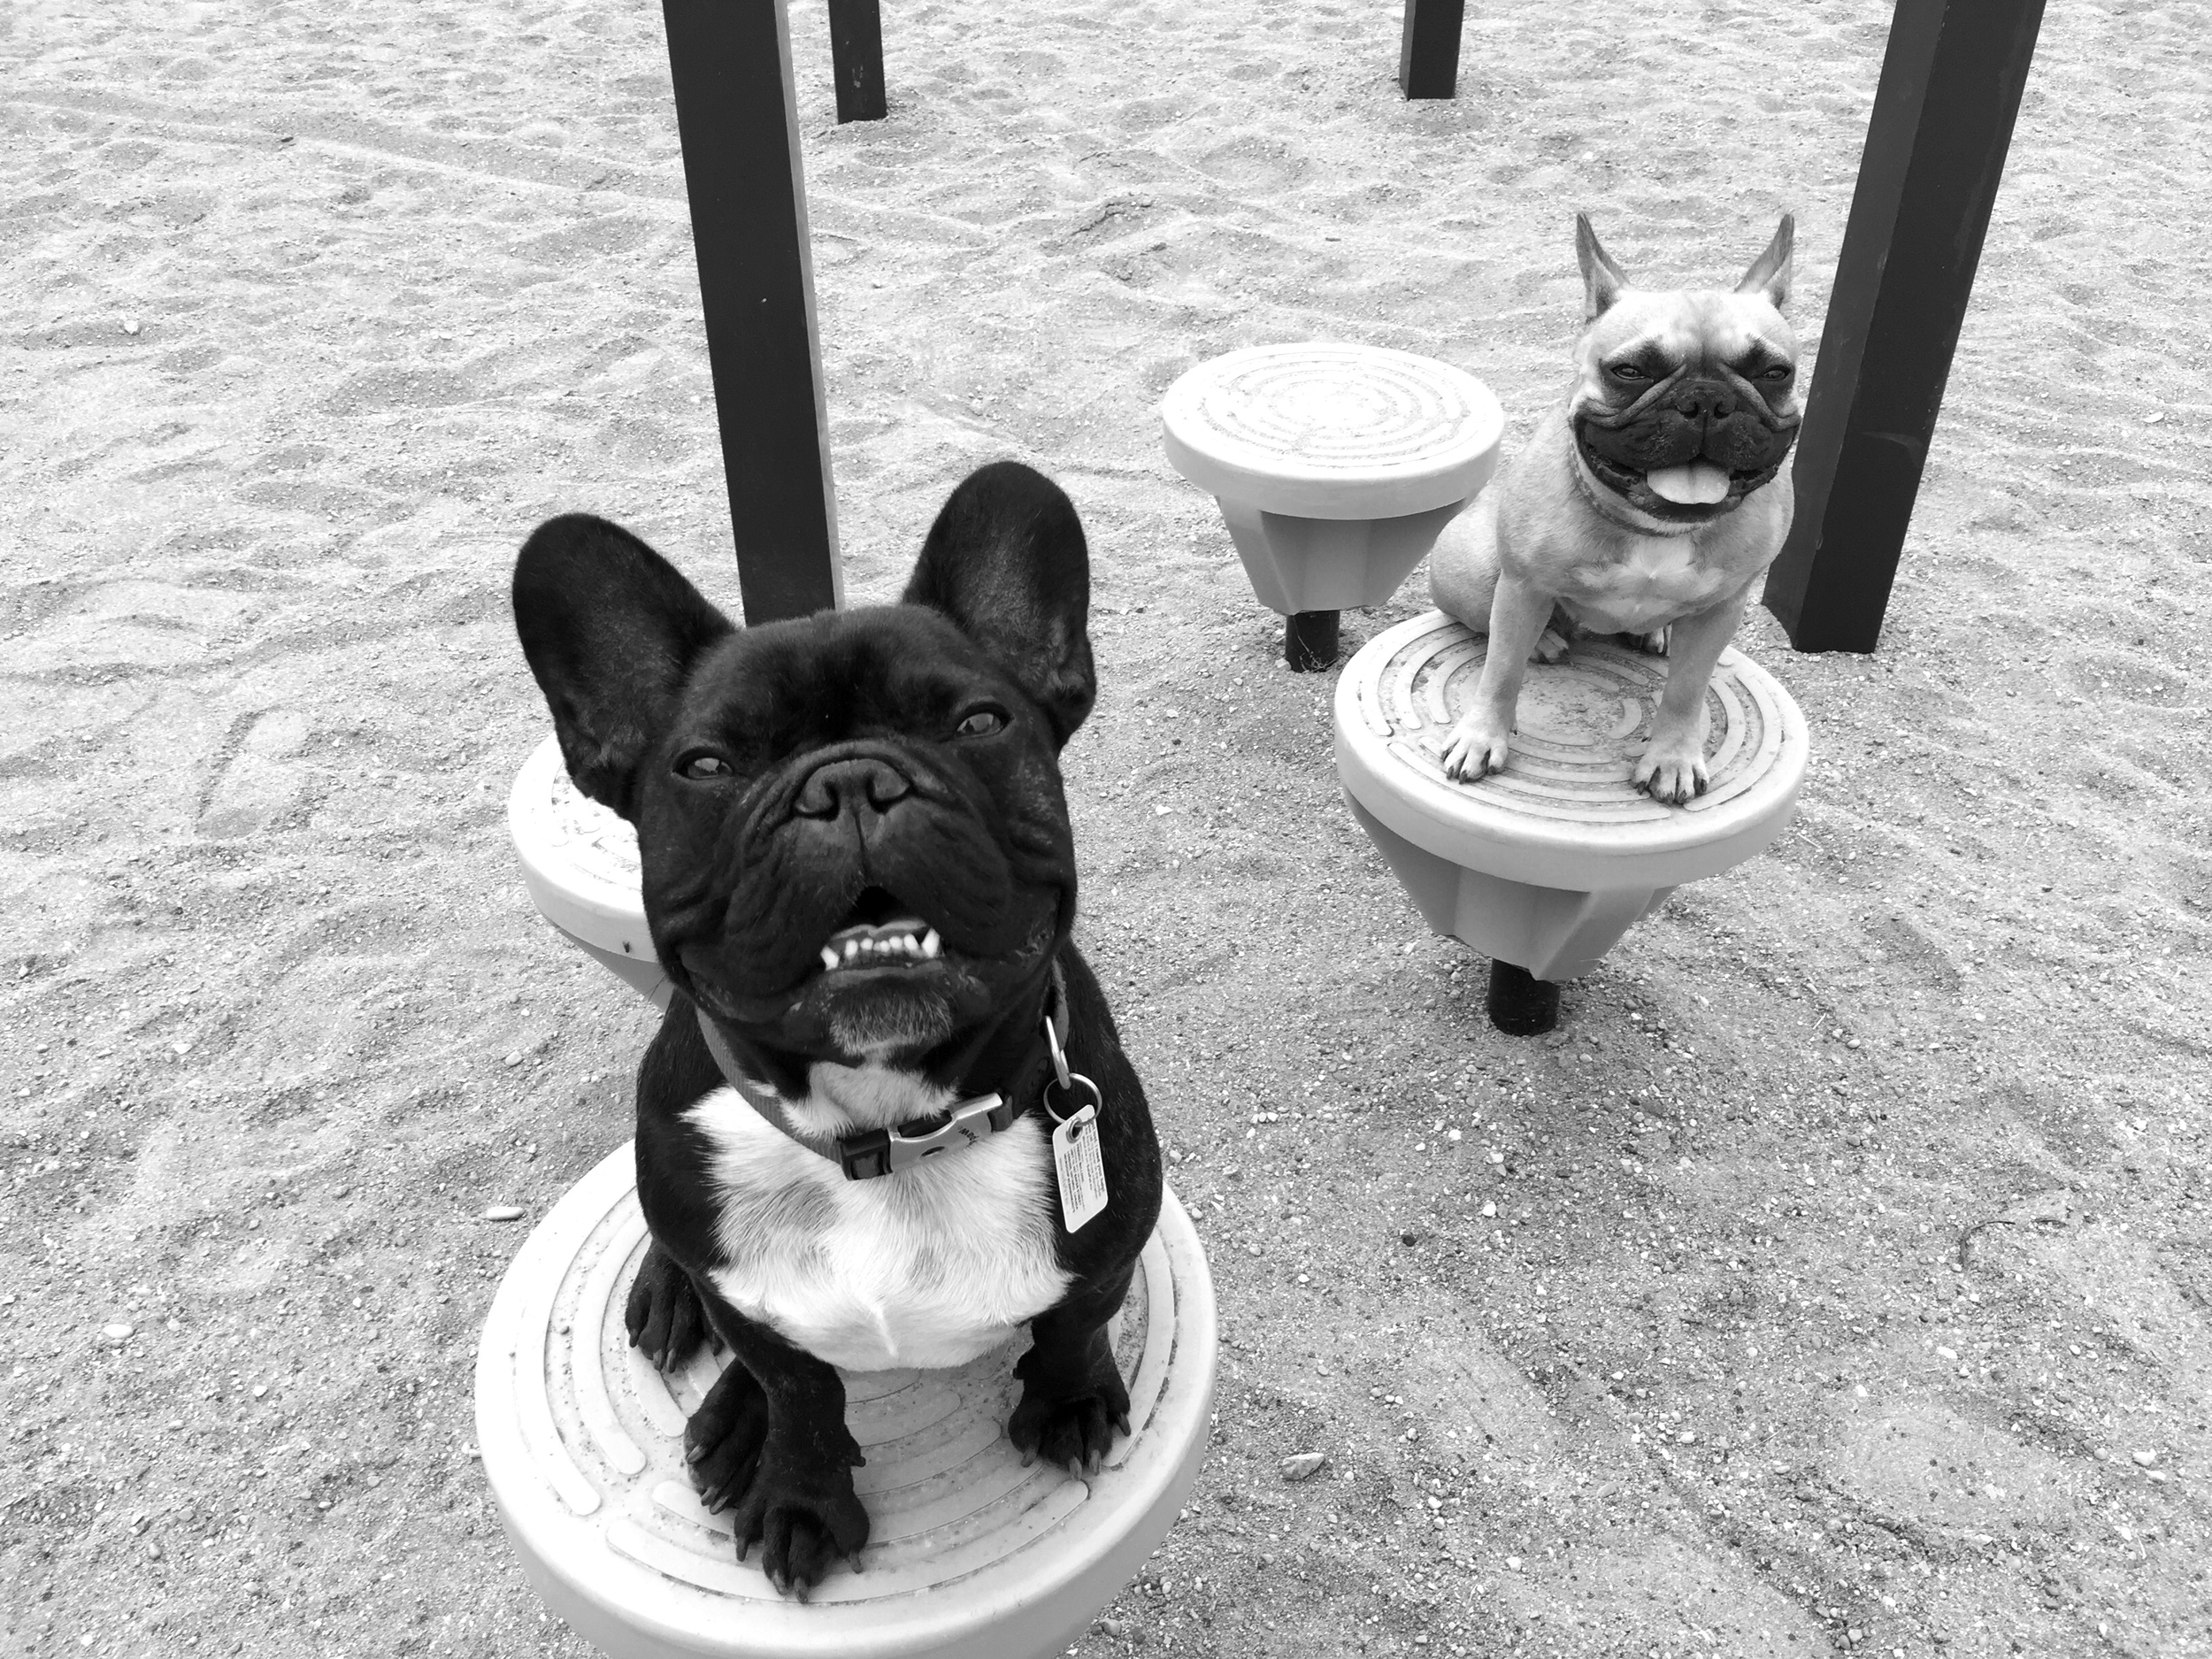 Hee hee!! Hi guys!!    This picturestory is me, ARCHIE BRINDLETON plus MIRABELLE too at a juniorperson goofballery park!! We are having HappyFunTimes poserating on some circleseats!! 😊 ...............